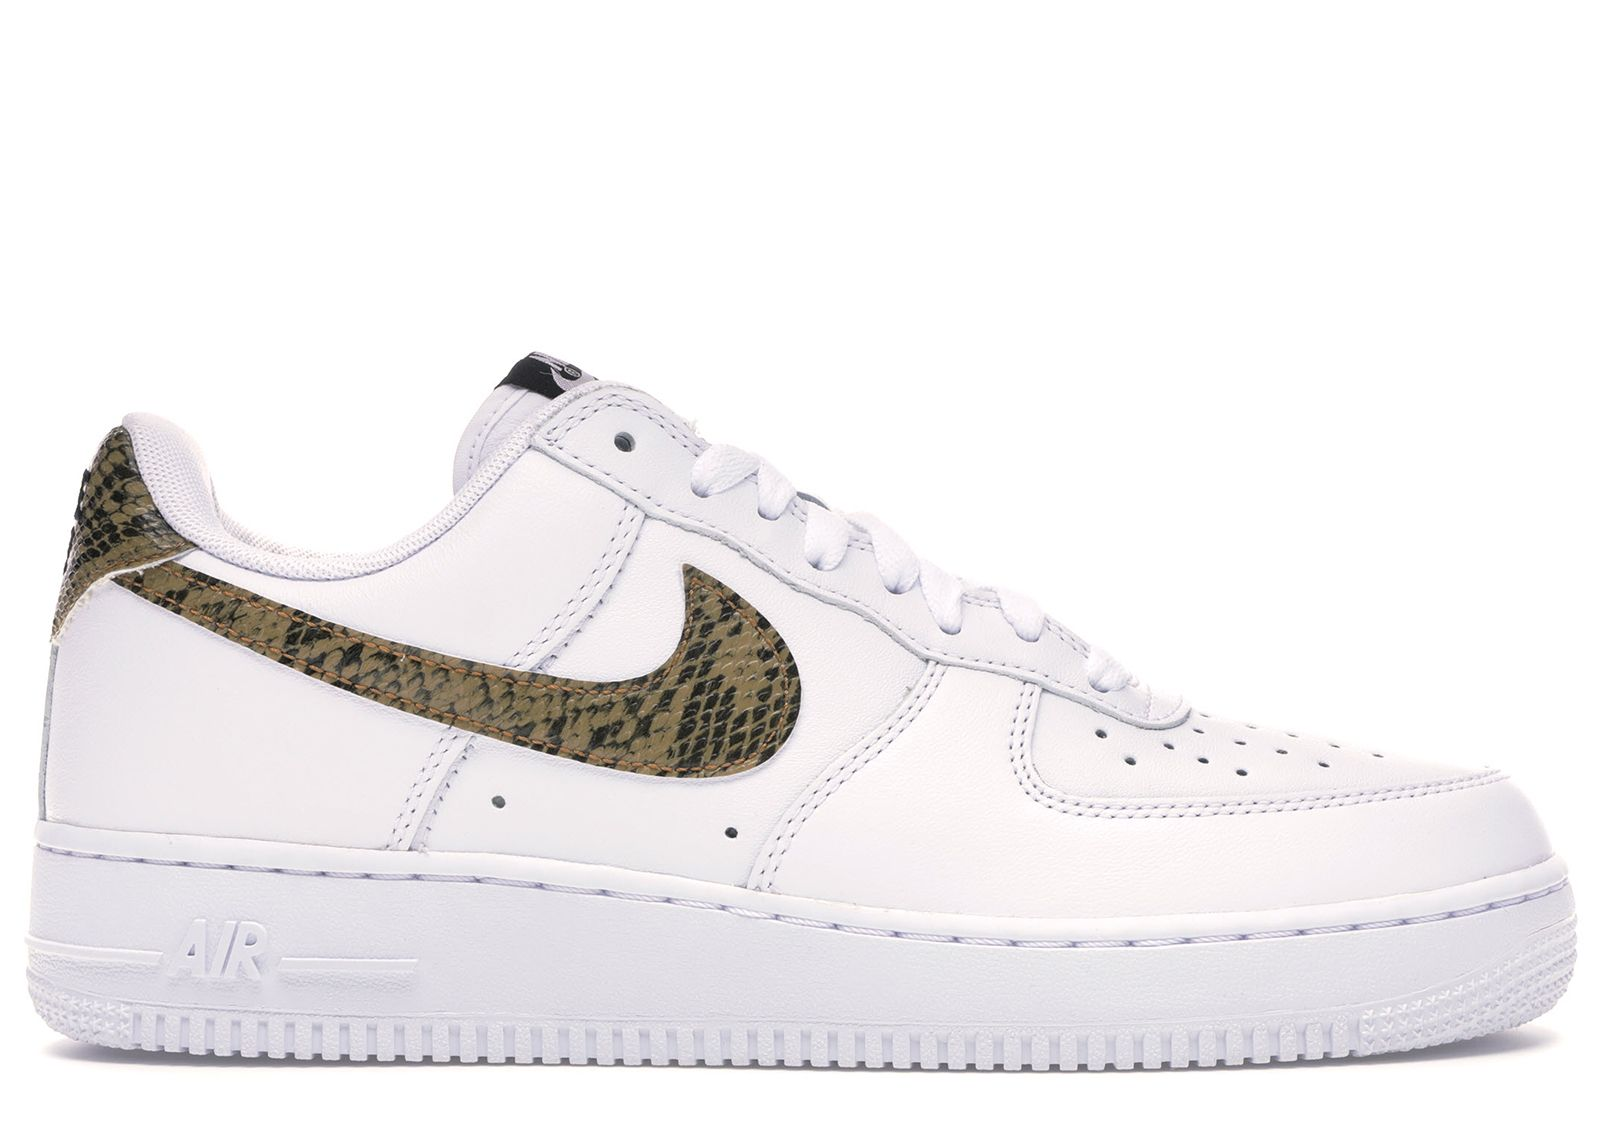 Nike Air Force 1 Low Sneakers In White